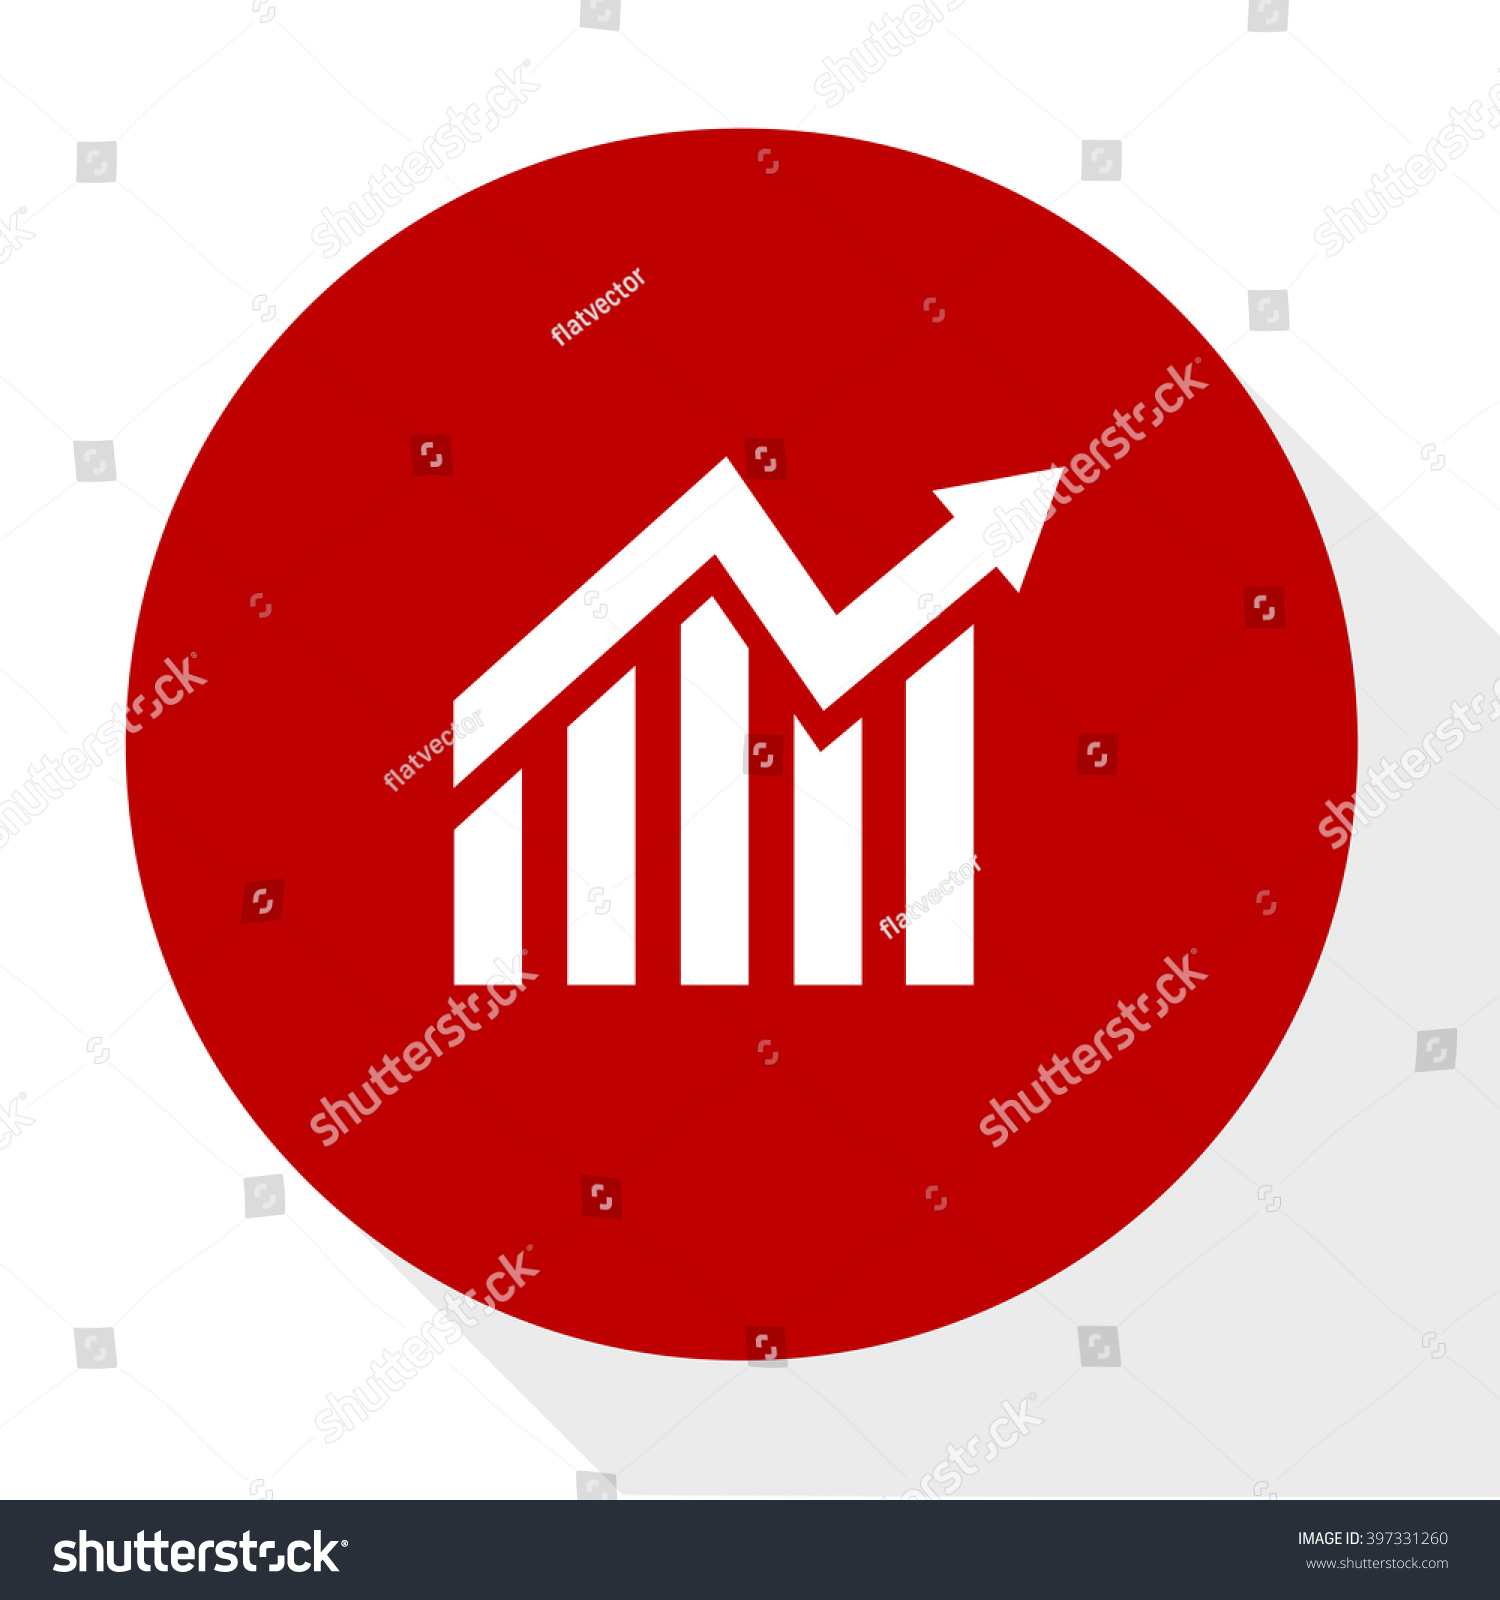 Finance Sign: Financial Charts Sign Stock Vector 397331260